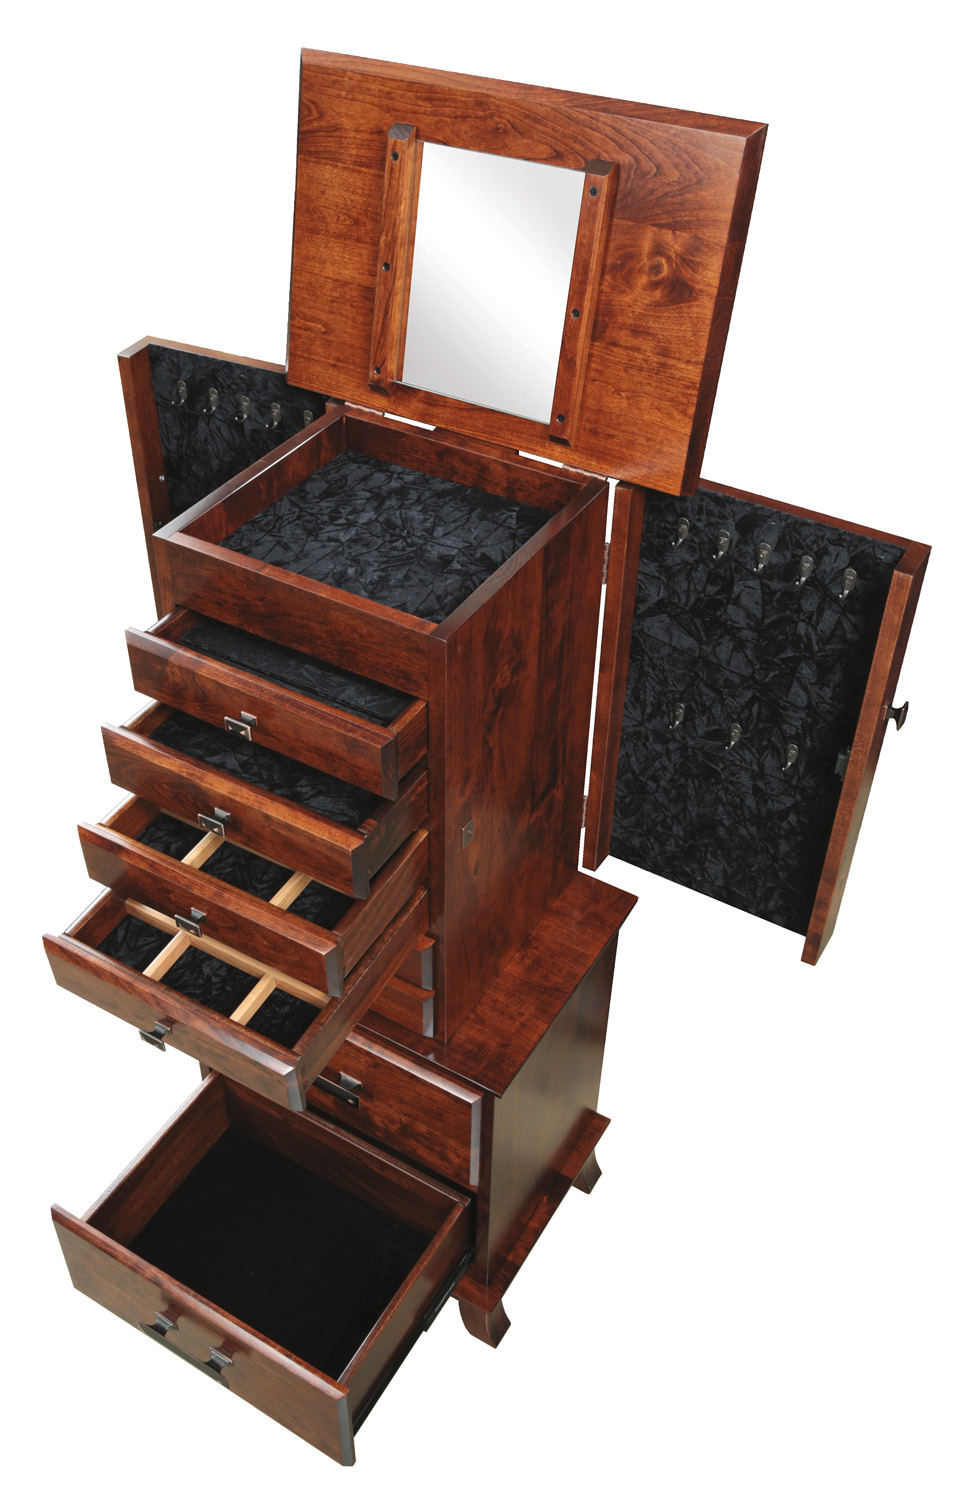 amish-shaker-jewelry-armoire